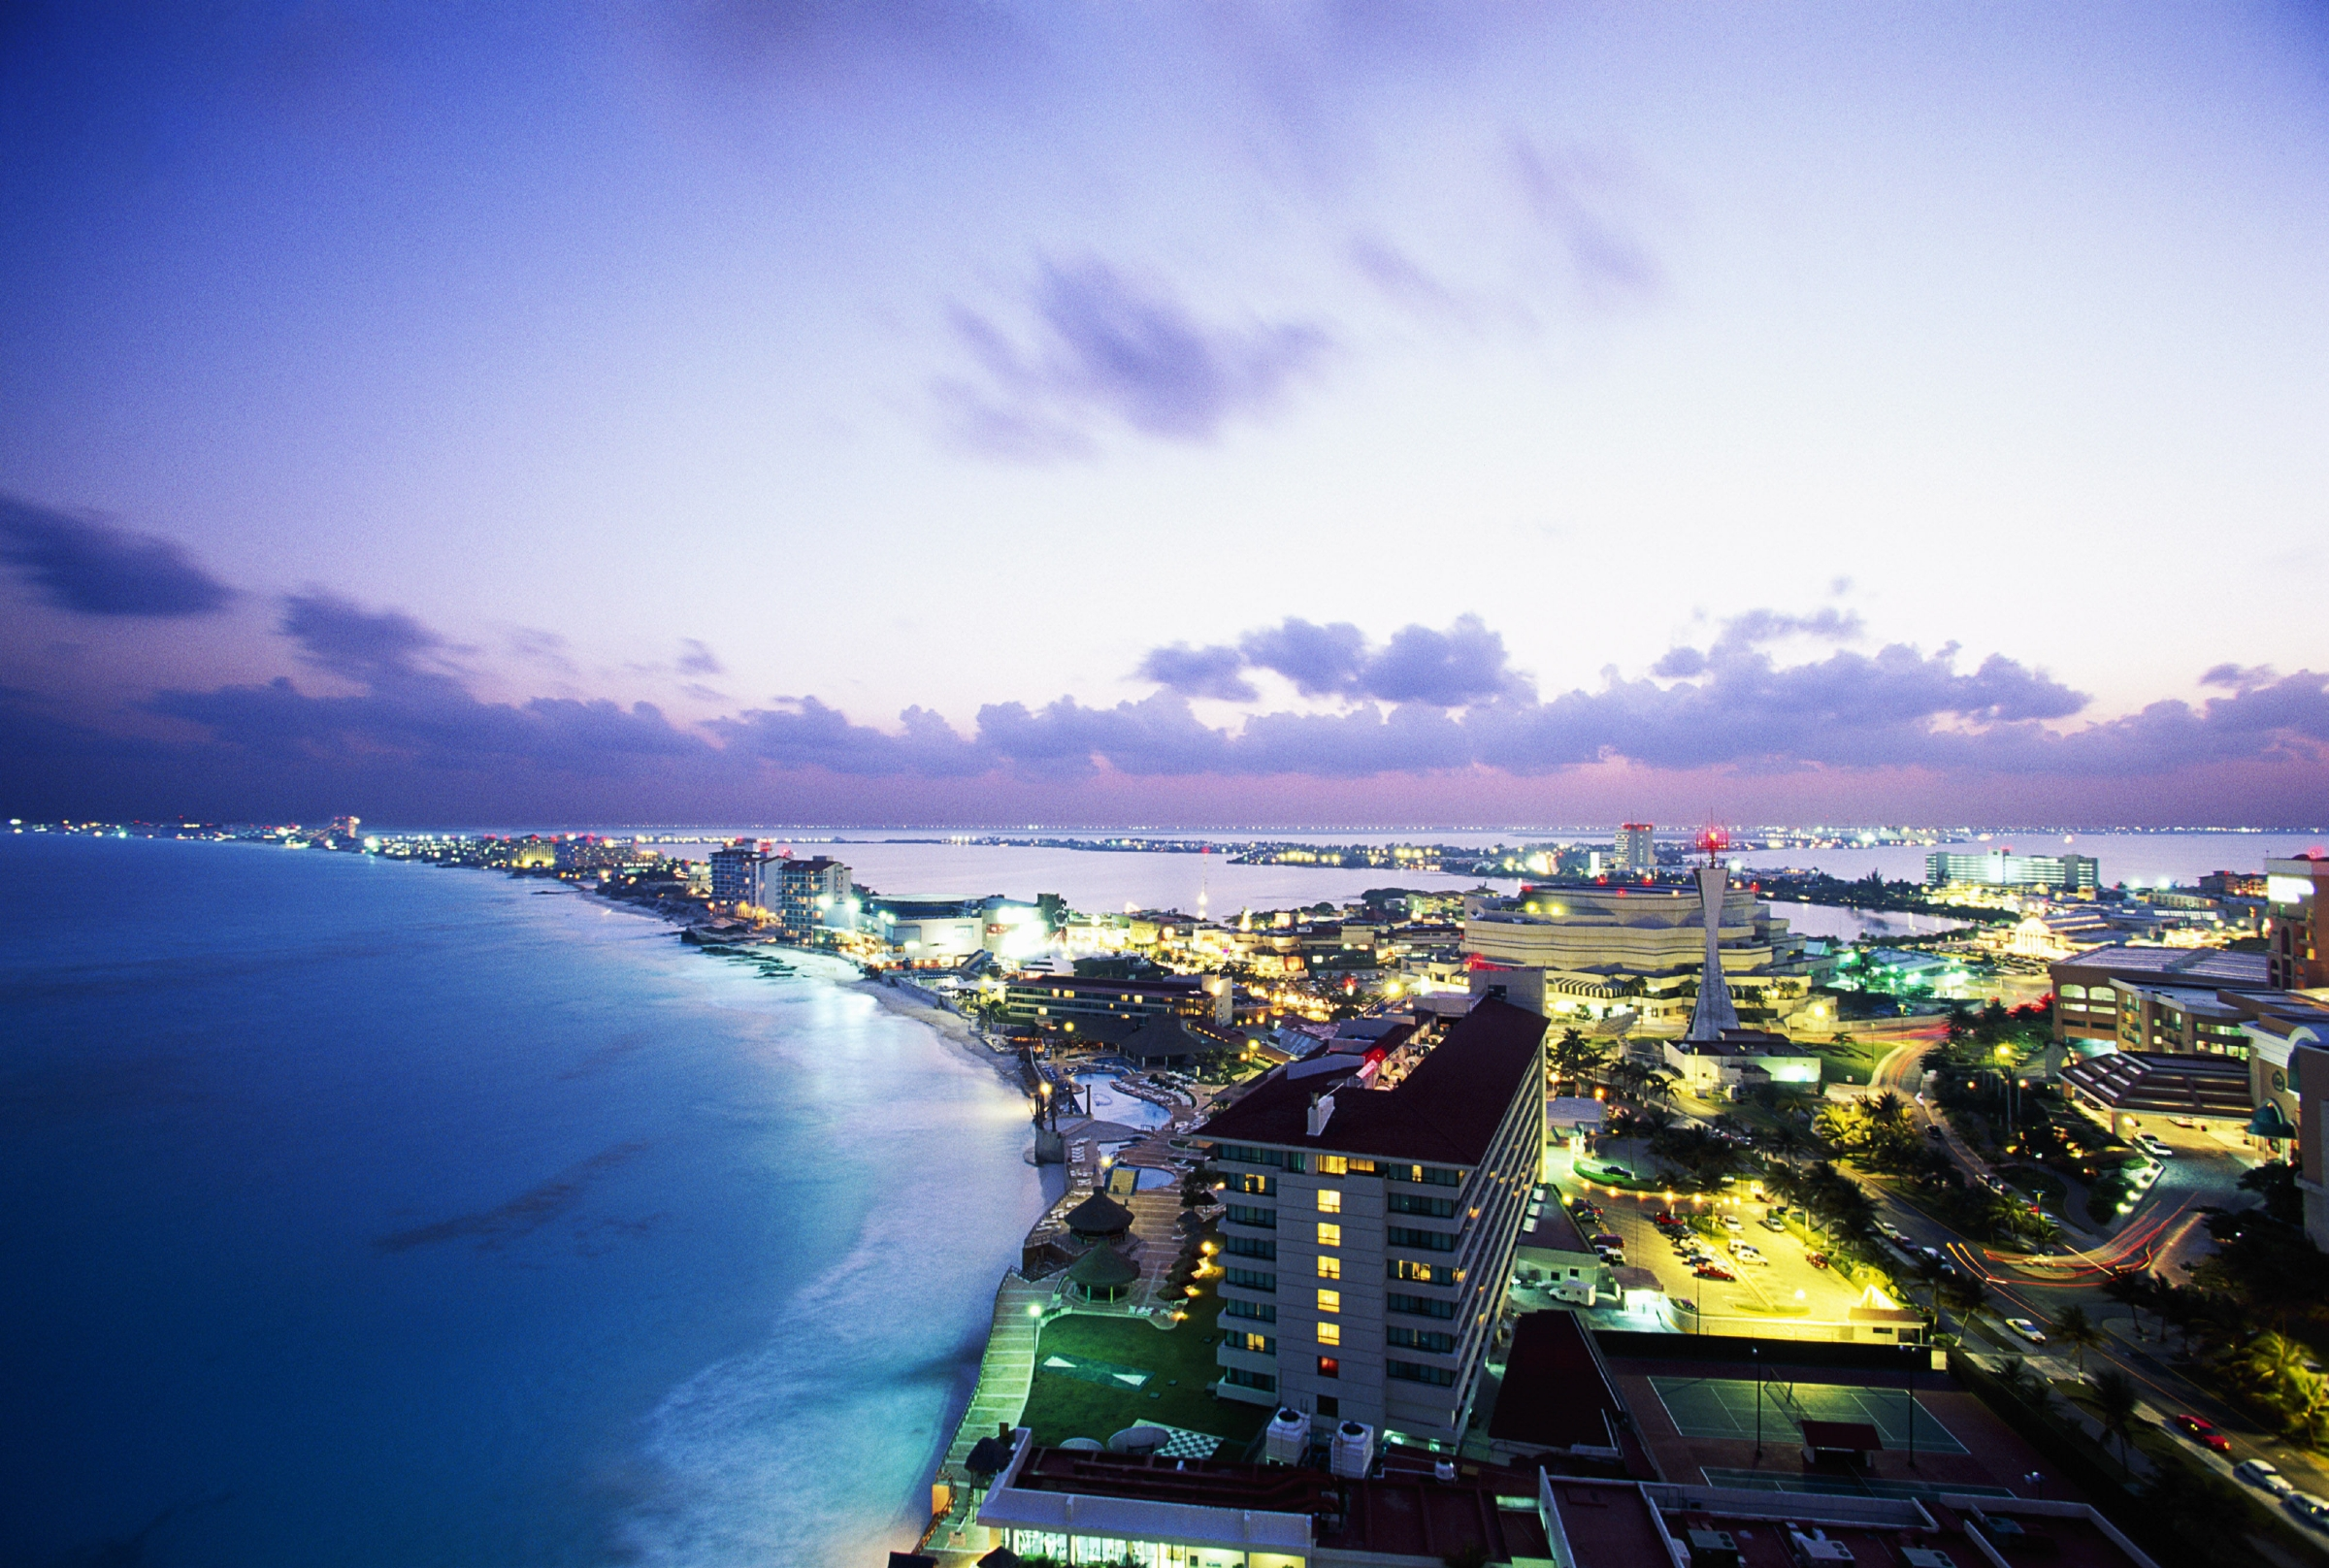 Aerial view of Cancun, Mexico. Image: Brand X Pictures/Getty Images